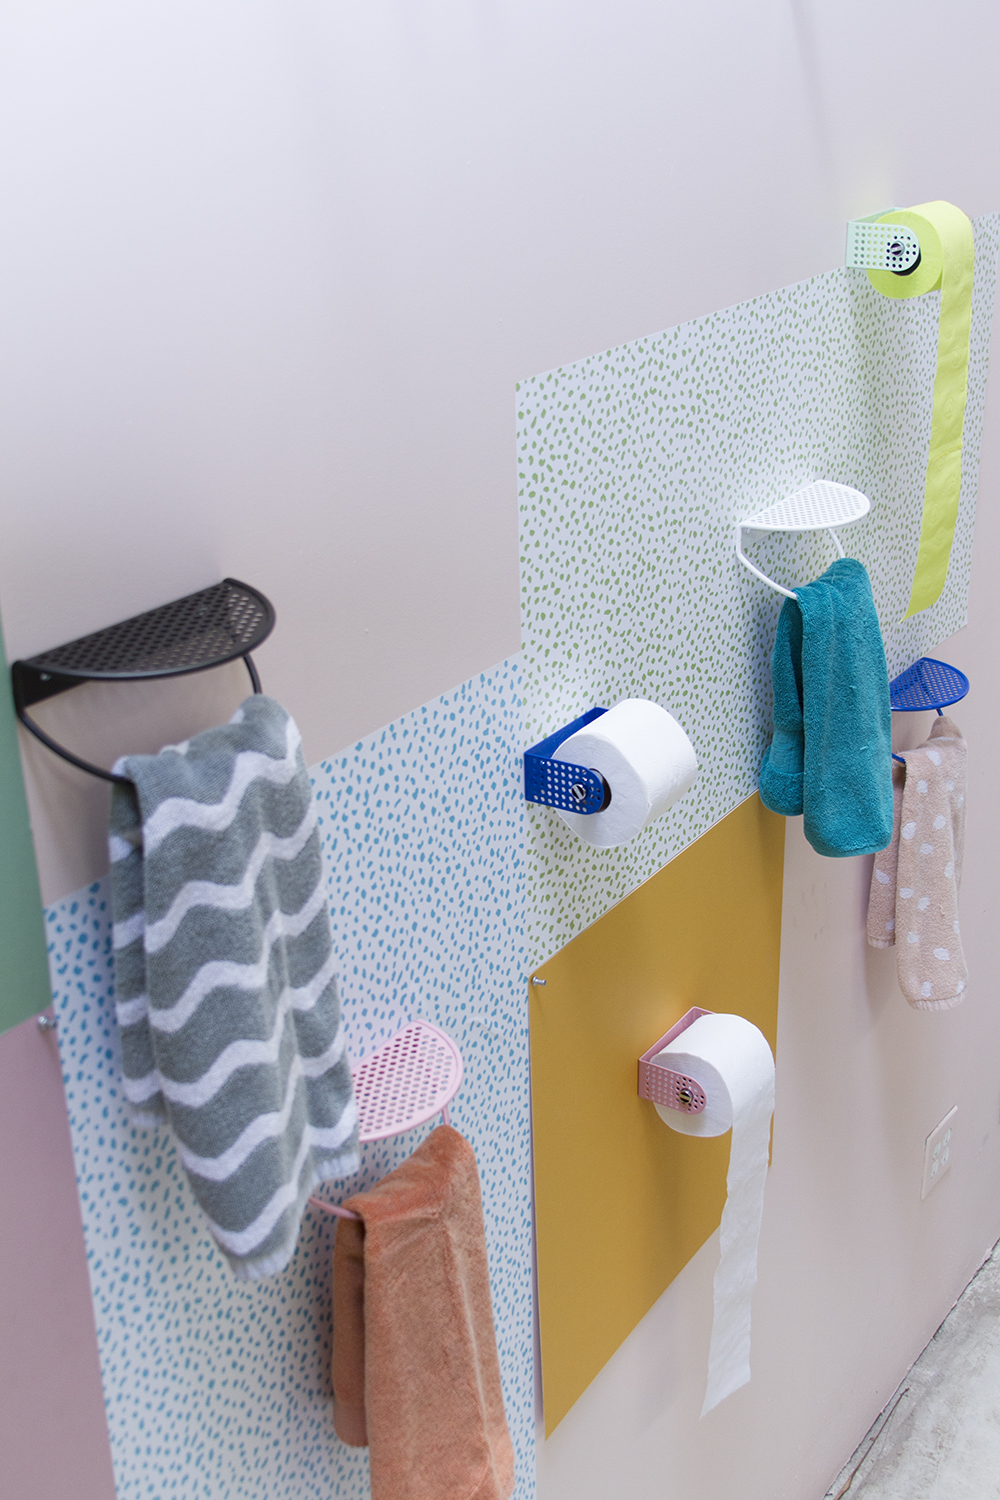 Pop Perf Hand Towel Rack, and Toilet Paper Holder.